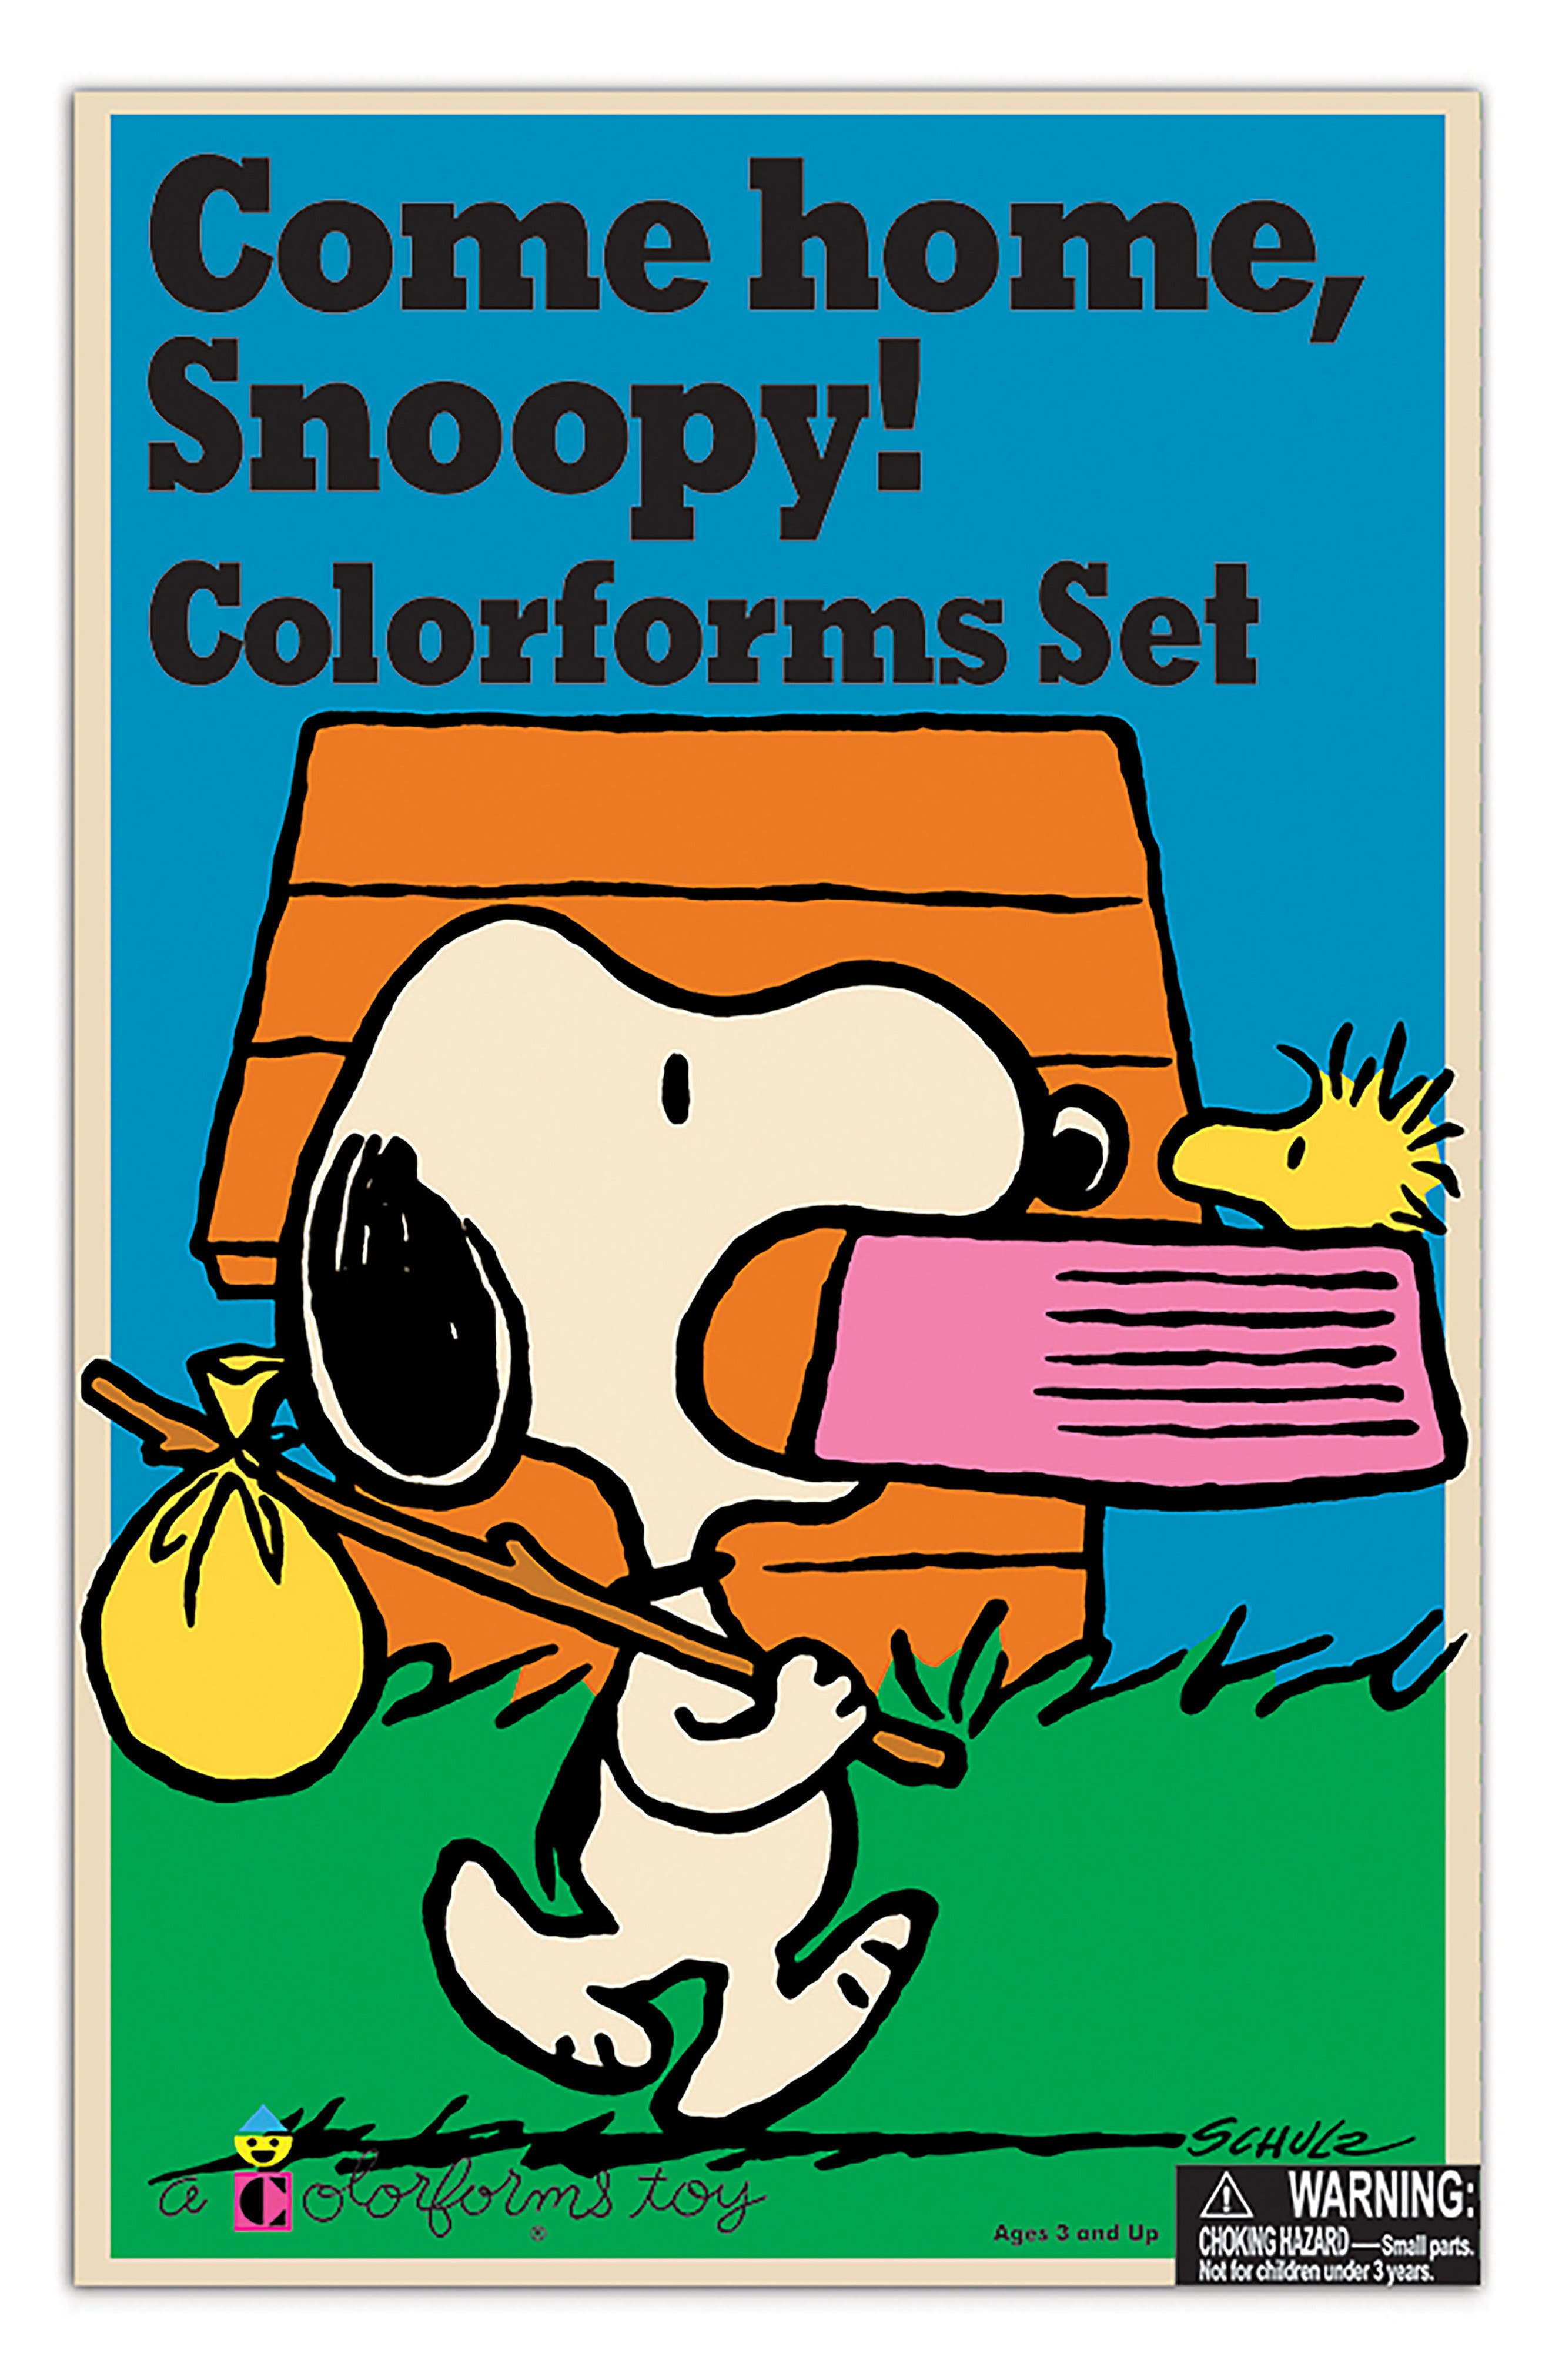 Colorforms Retro Come Home Snoopy Stick-On Play Set